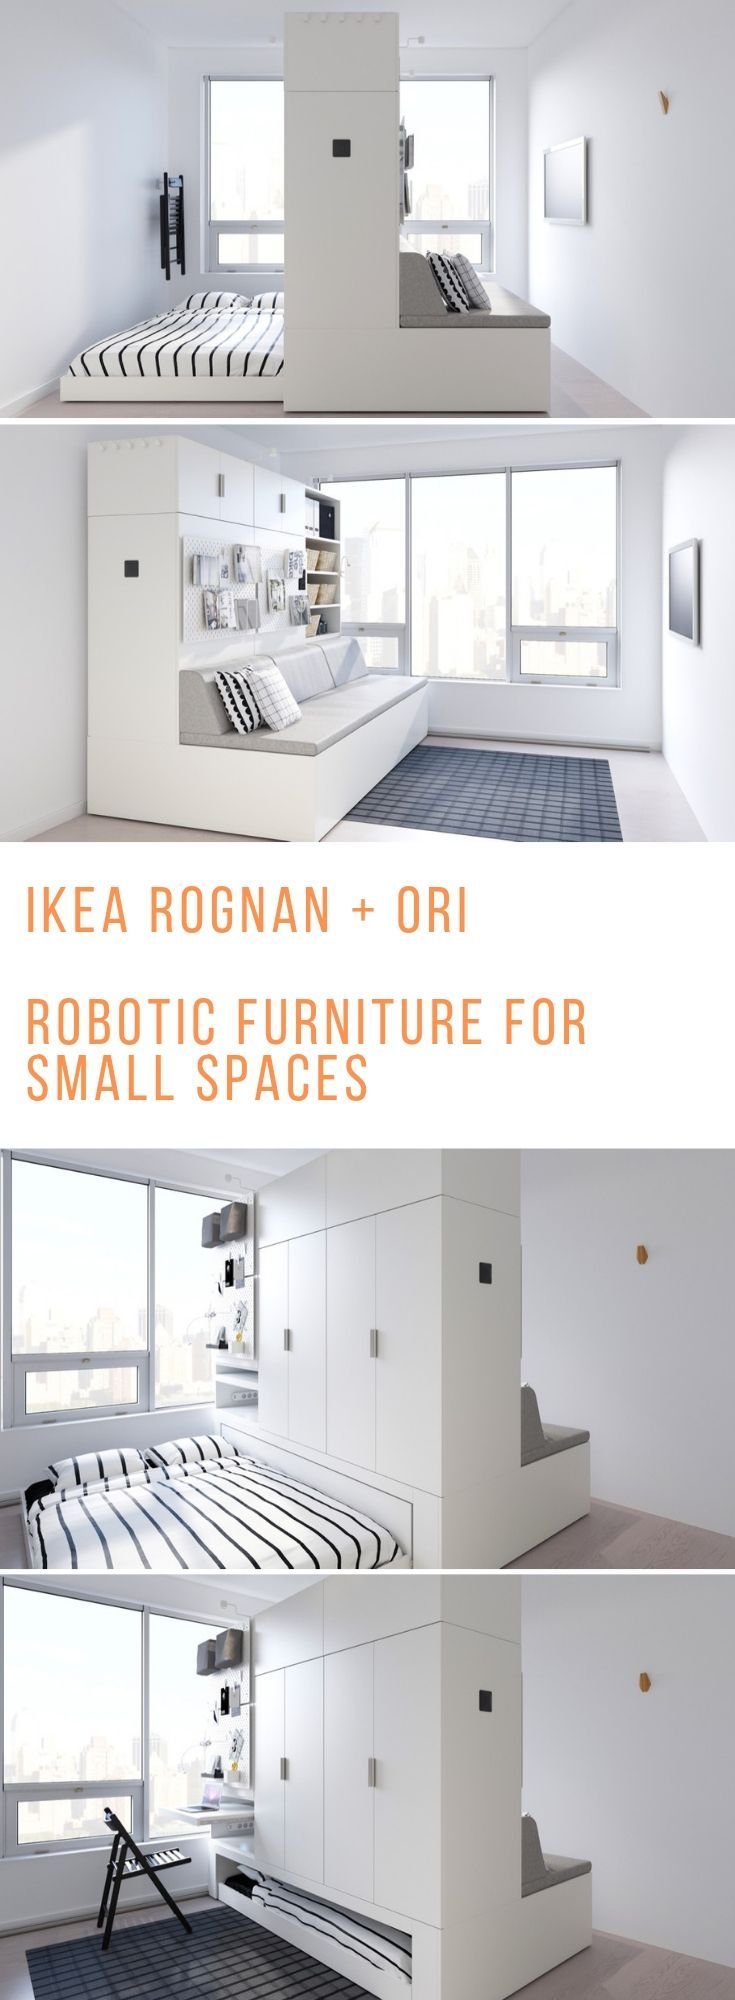 Robotic Furniture: IKEA's new big thing for tiny spaces Shape shifting robot…